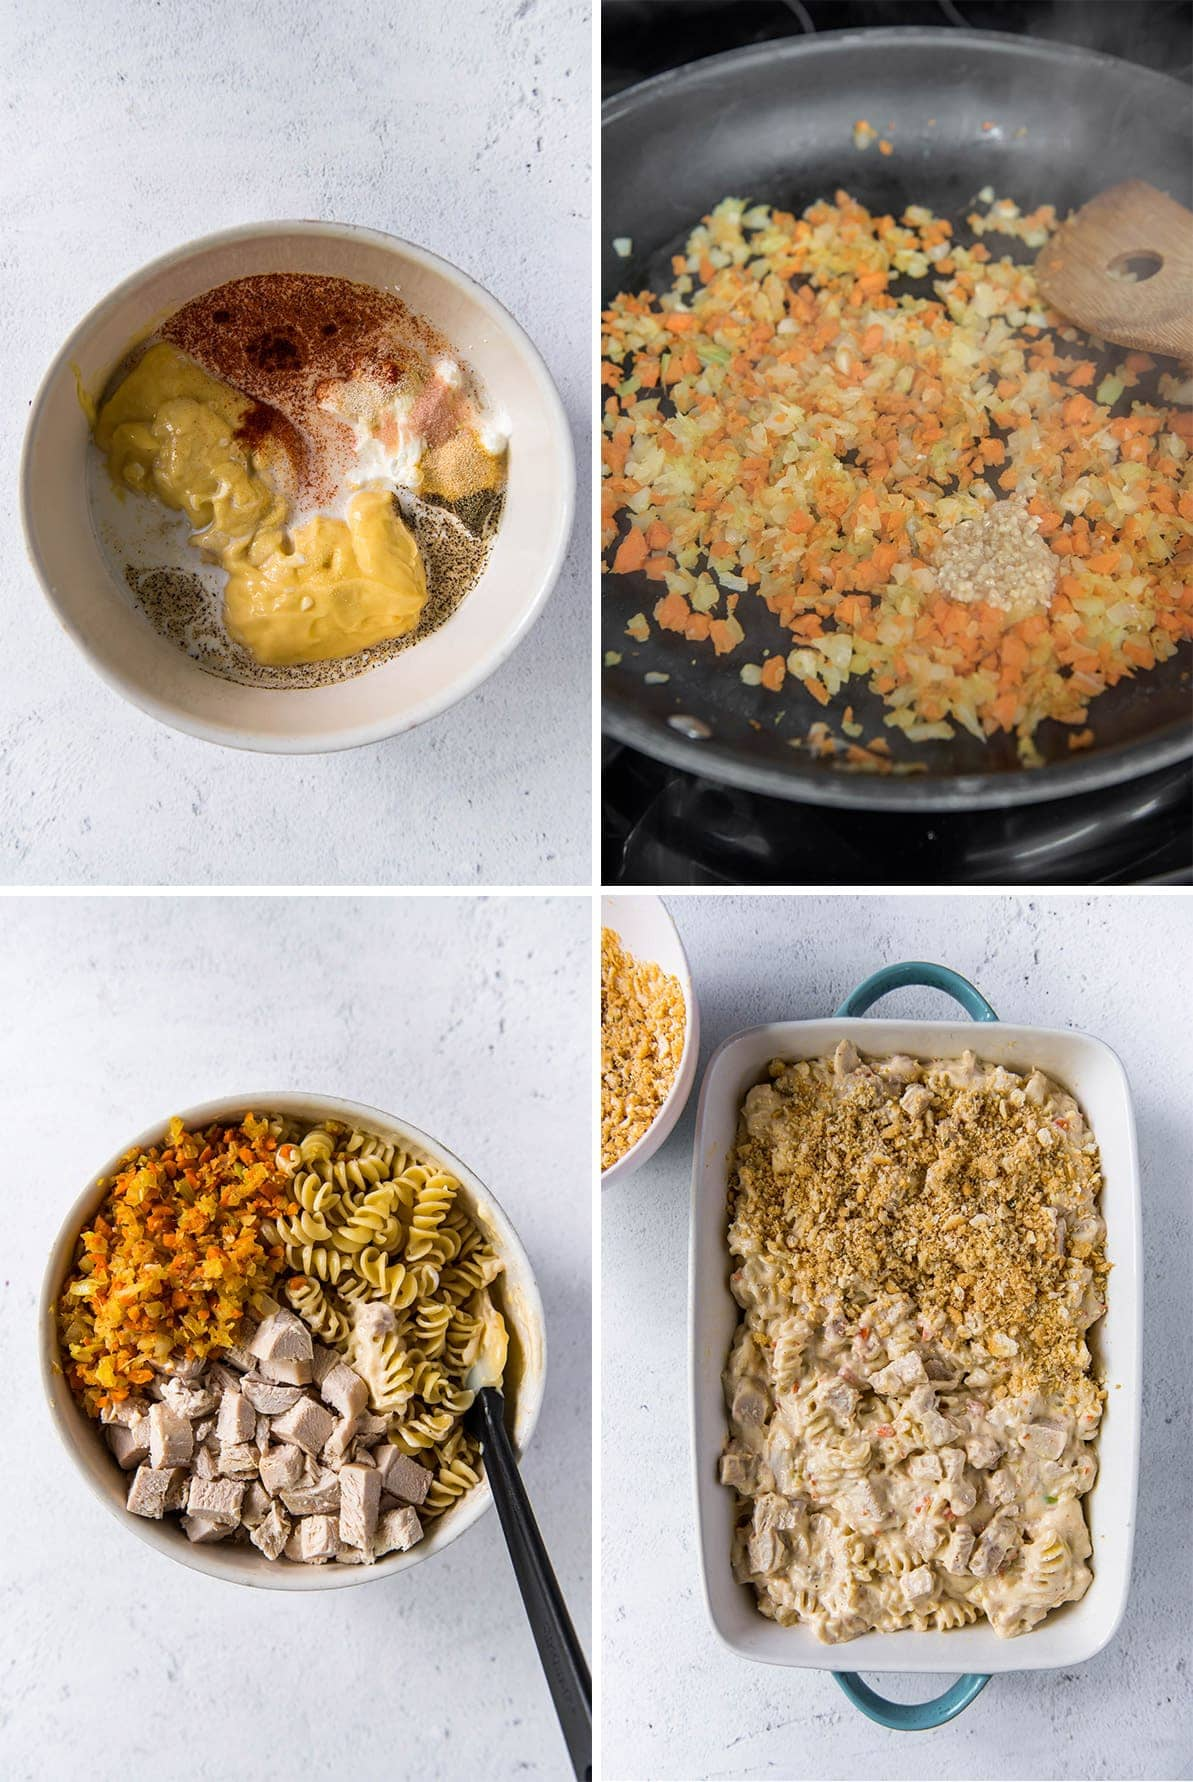 4 image collage showing how to make a chicken casserole